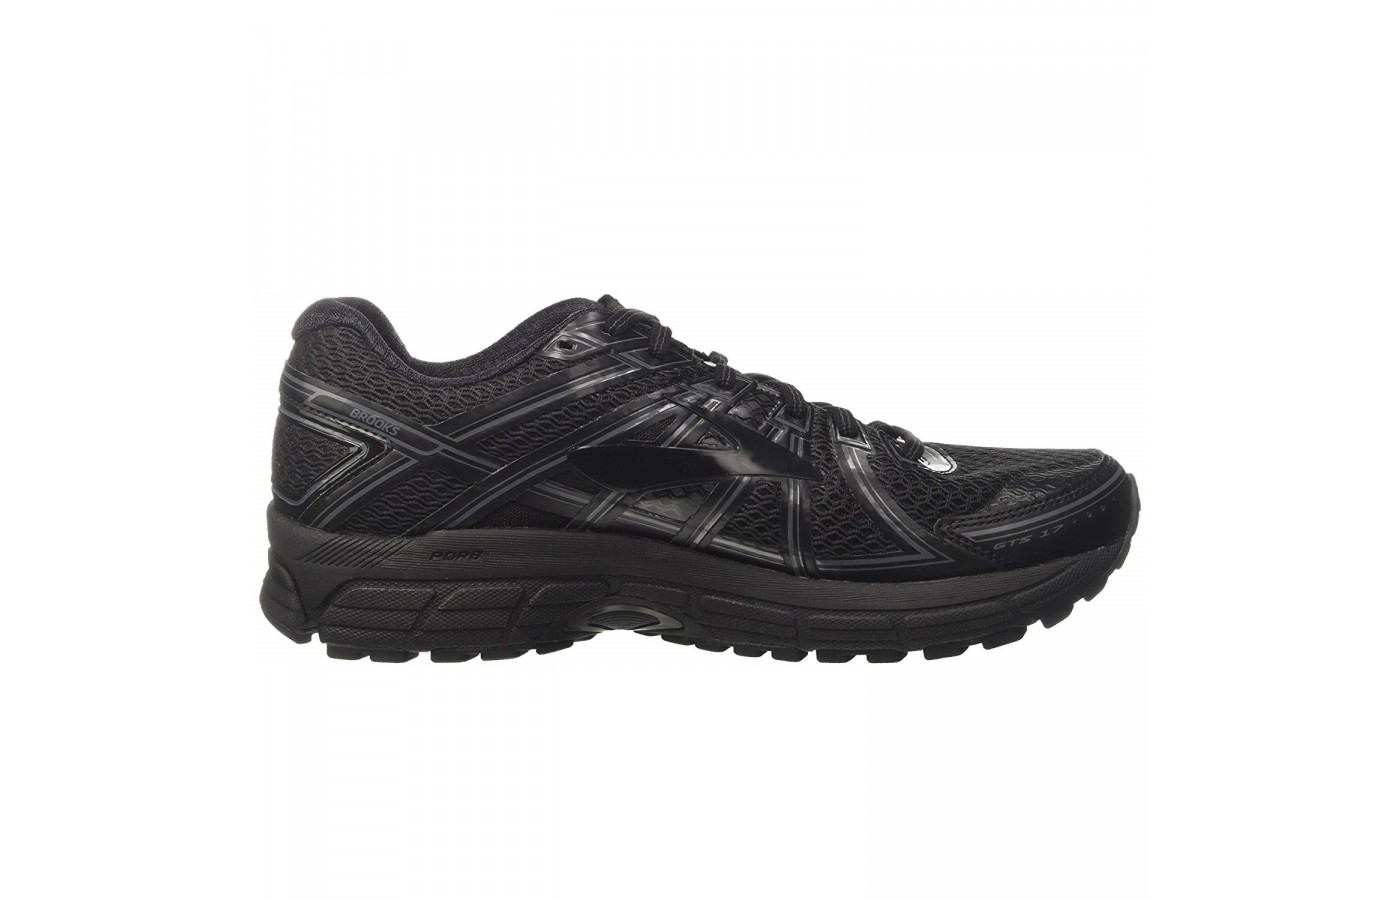 The Brooks Adrenaline GTS 17 offers superior support in order to protect the runner.